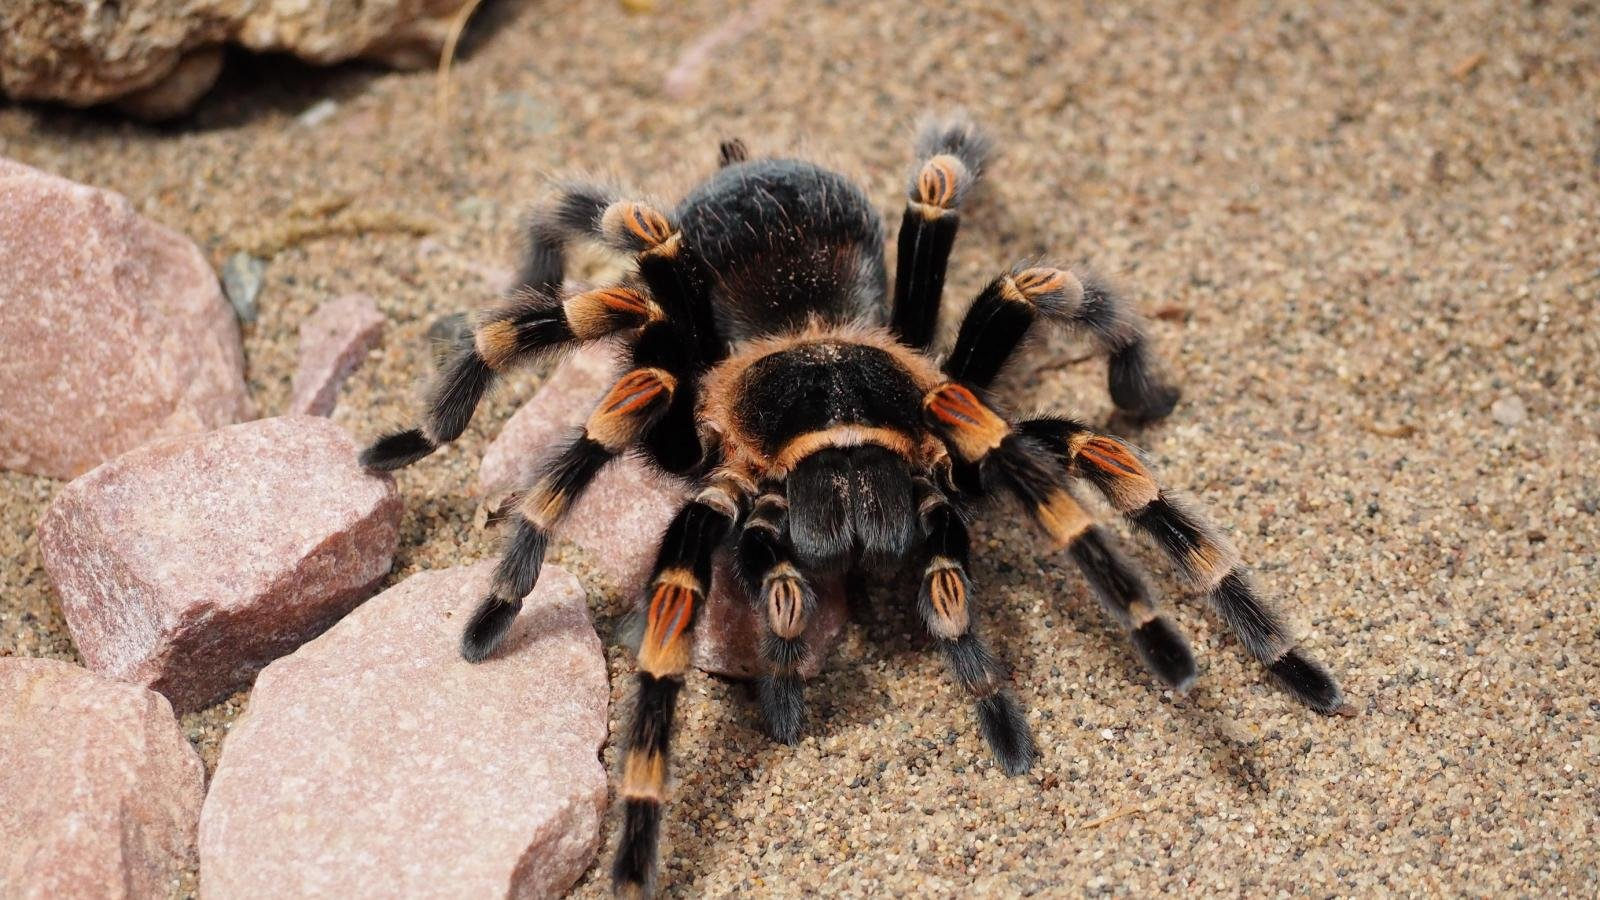 Free Tarantula high quality wallpaper ID:409551 for hd 1600x900 computer